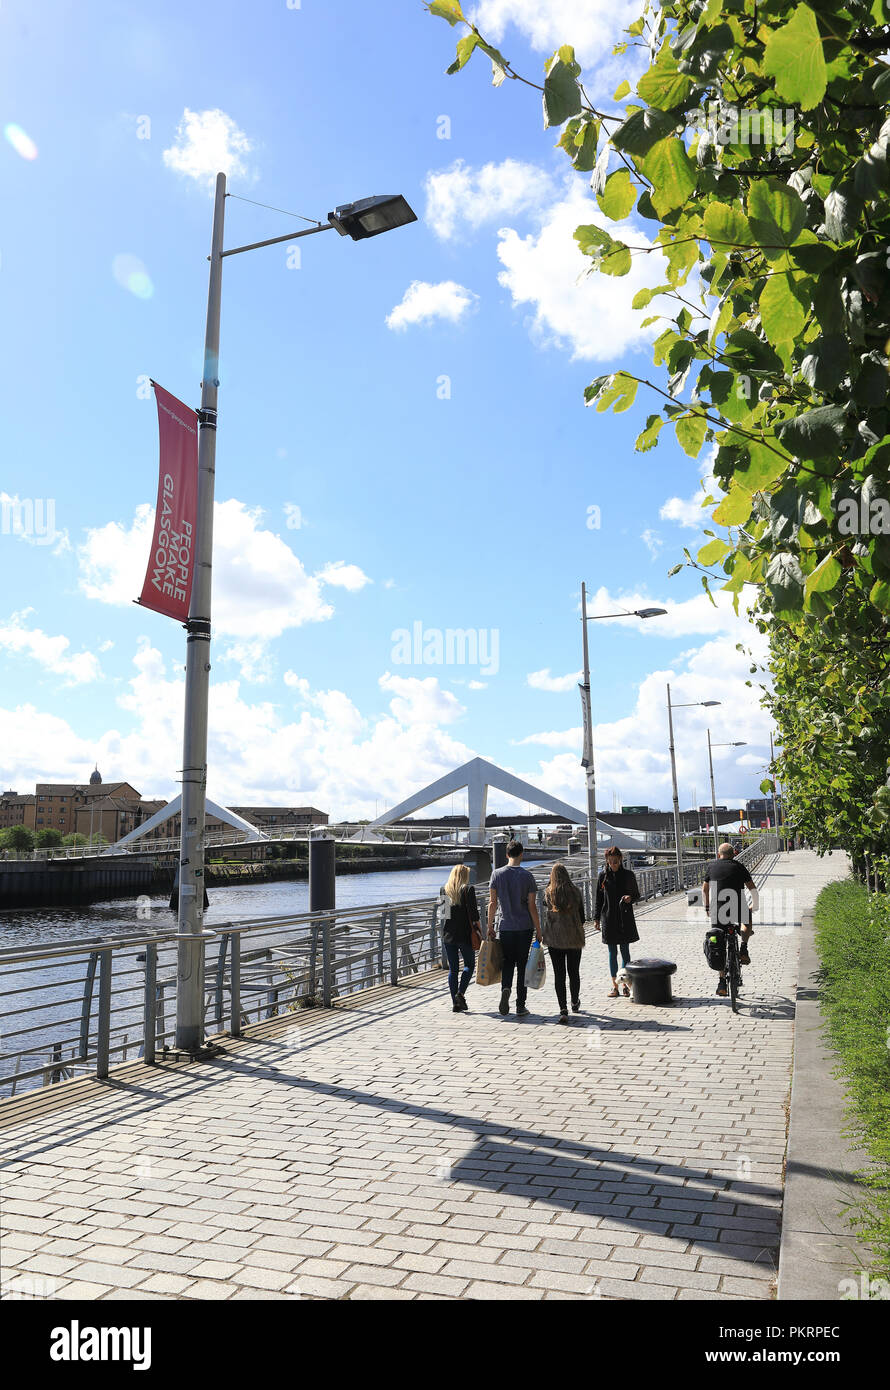 Walking and cycling on the towpath of the River Clyde, towards the Squiggly Bridge, in Glasgow, in Scotland, UK - Stock Image